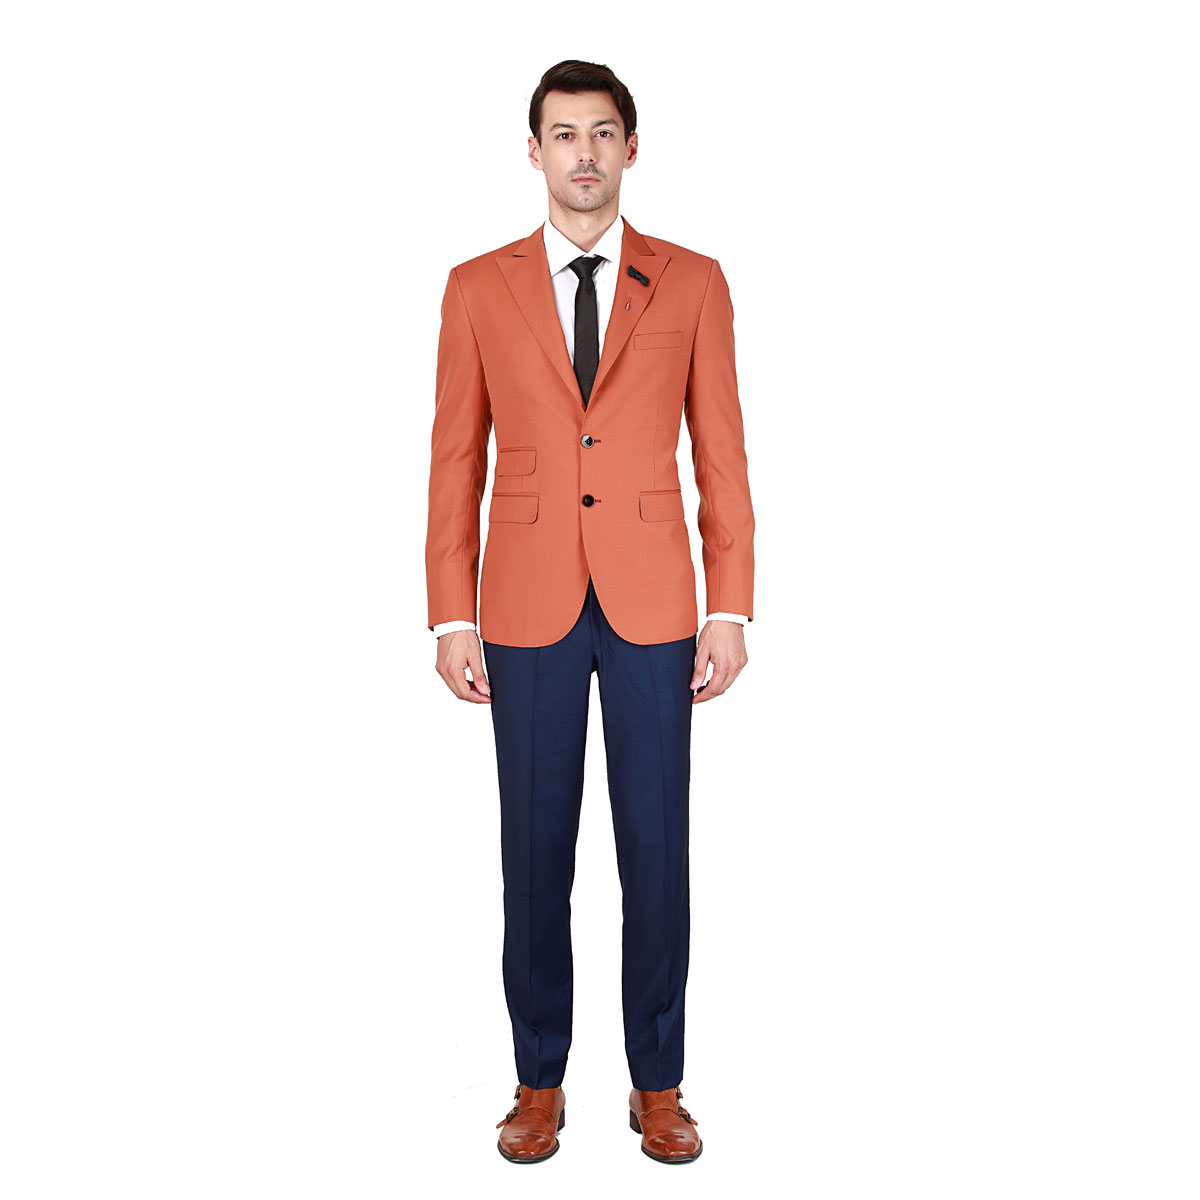 J Crew Ludlow suit jacket, from £, and trousers, from £ The American outfitter began the charge with its slim-fit Ludlow suit seven years ago. It has expanded to .